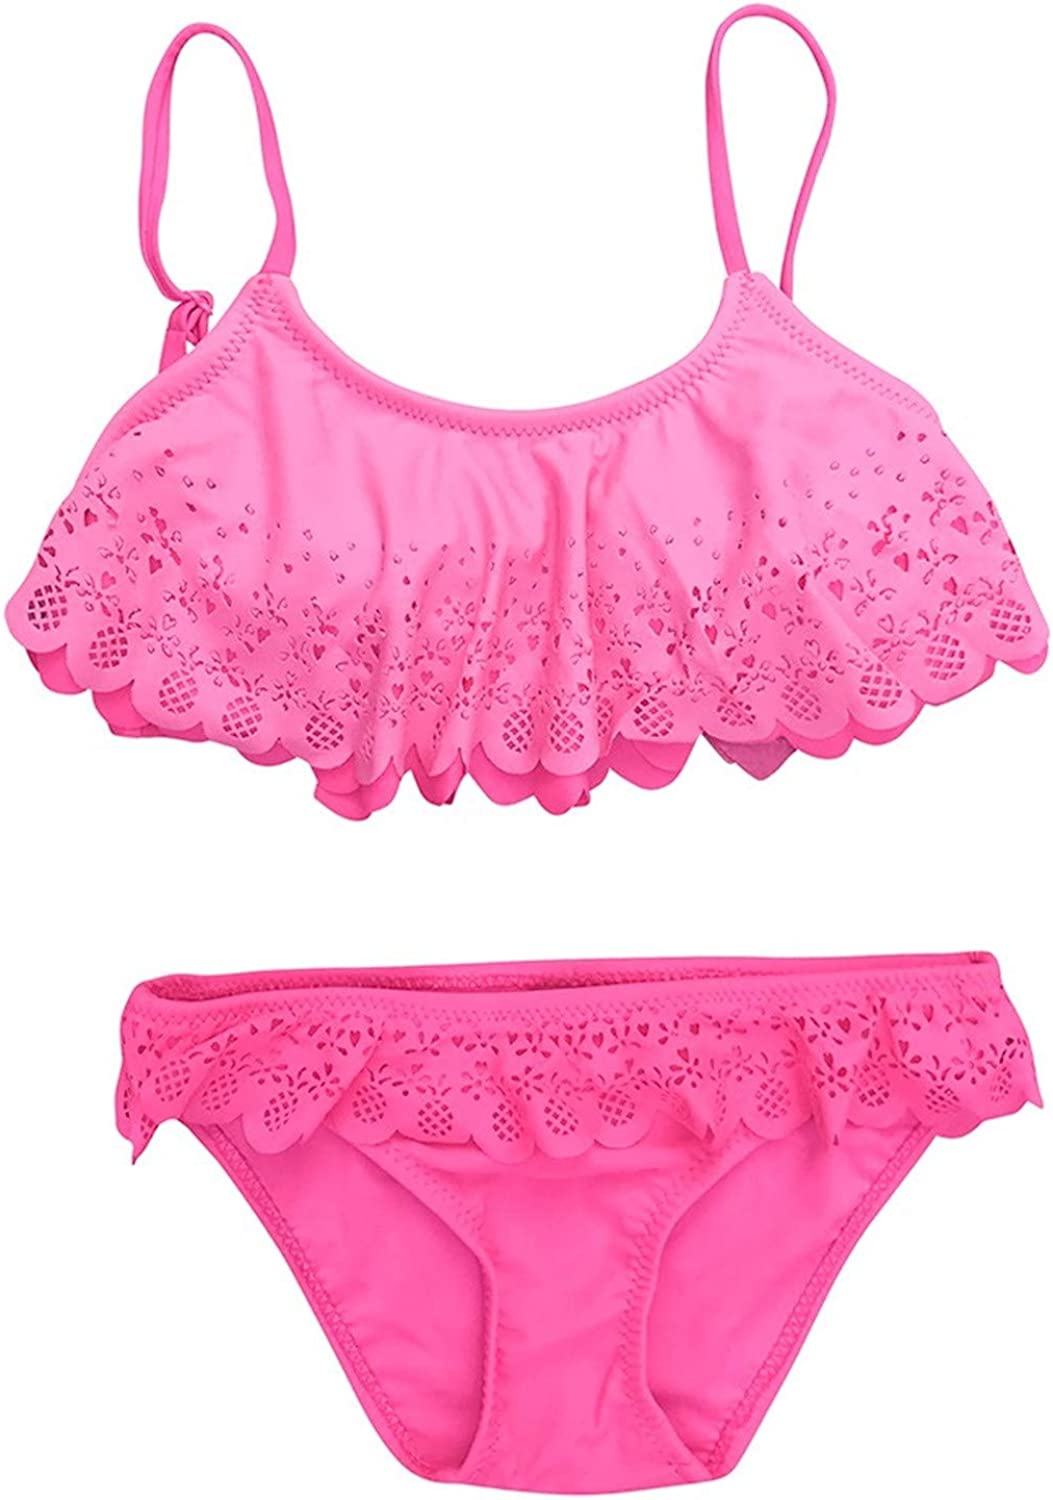 Two Piece Lace Hollow Out Swimsuits Tulsa Mall for Fashion Shoulde Off Ruffle Girls